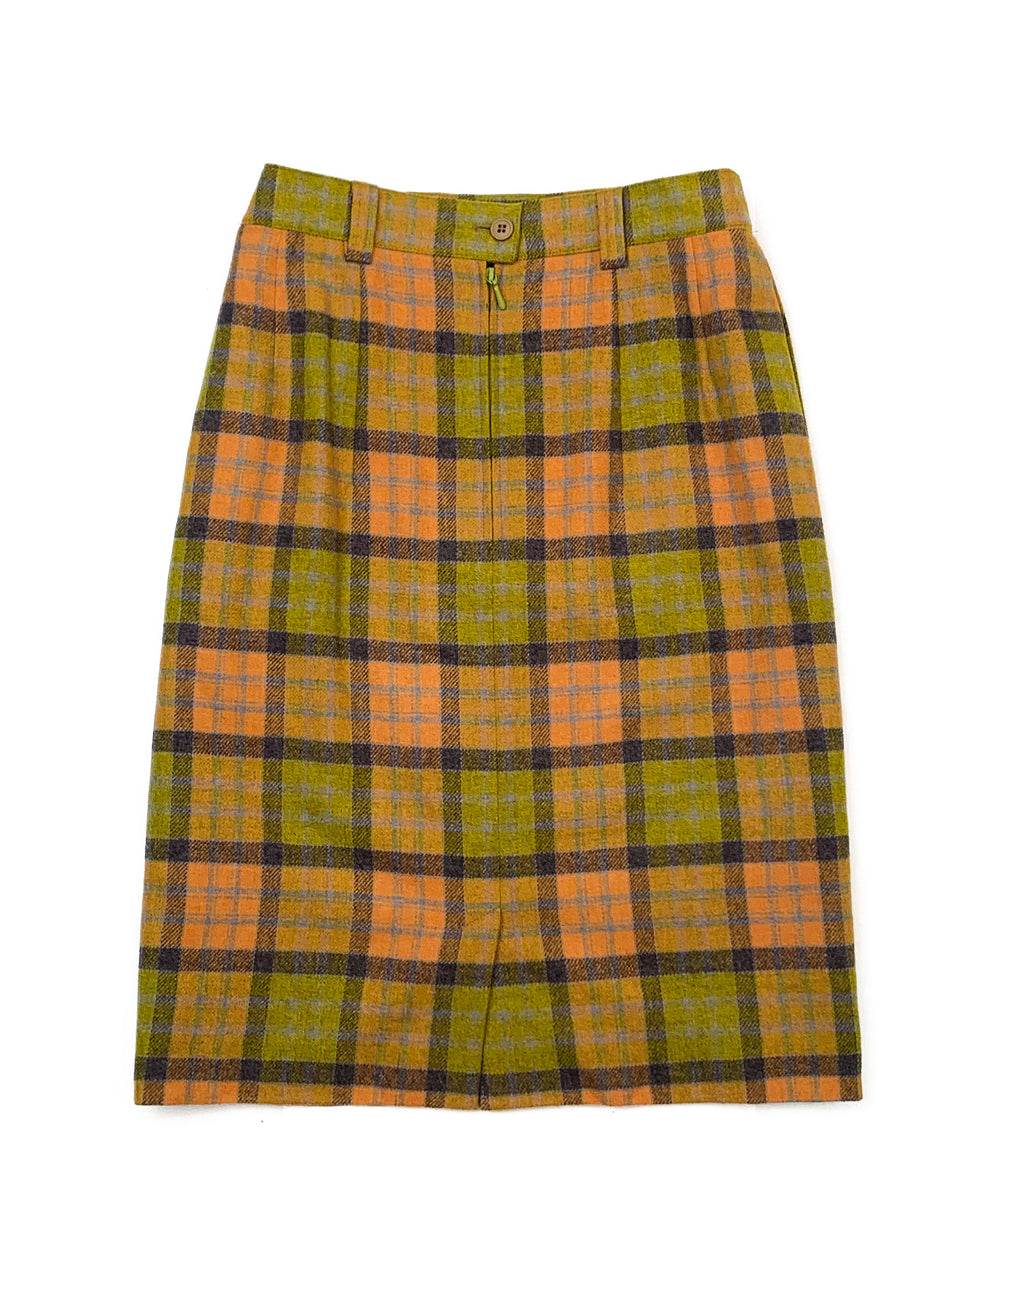 ORANGE AND GREEN WOOL PENCIL SKIRT